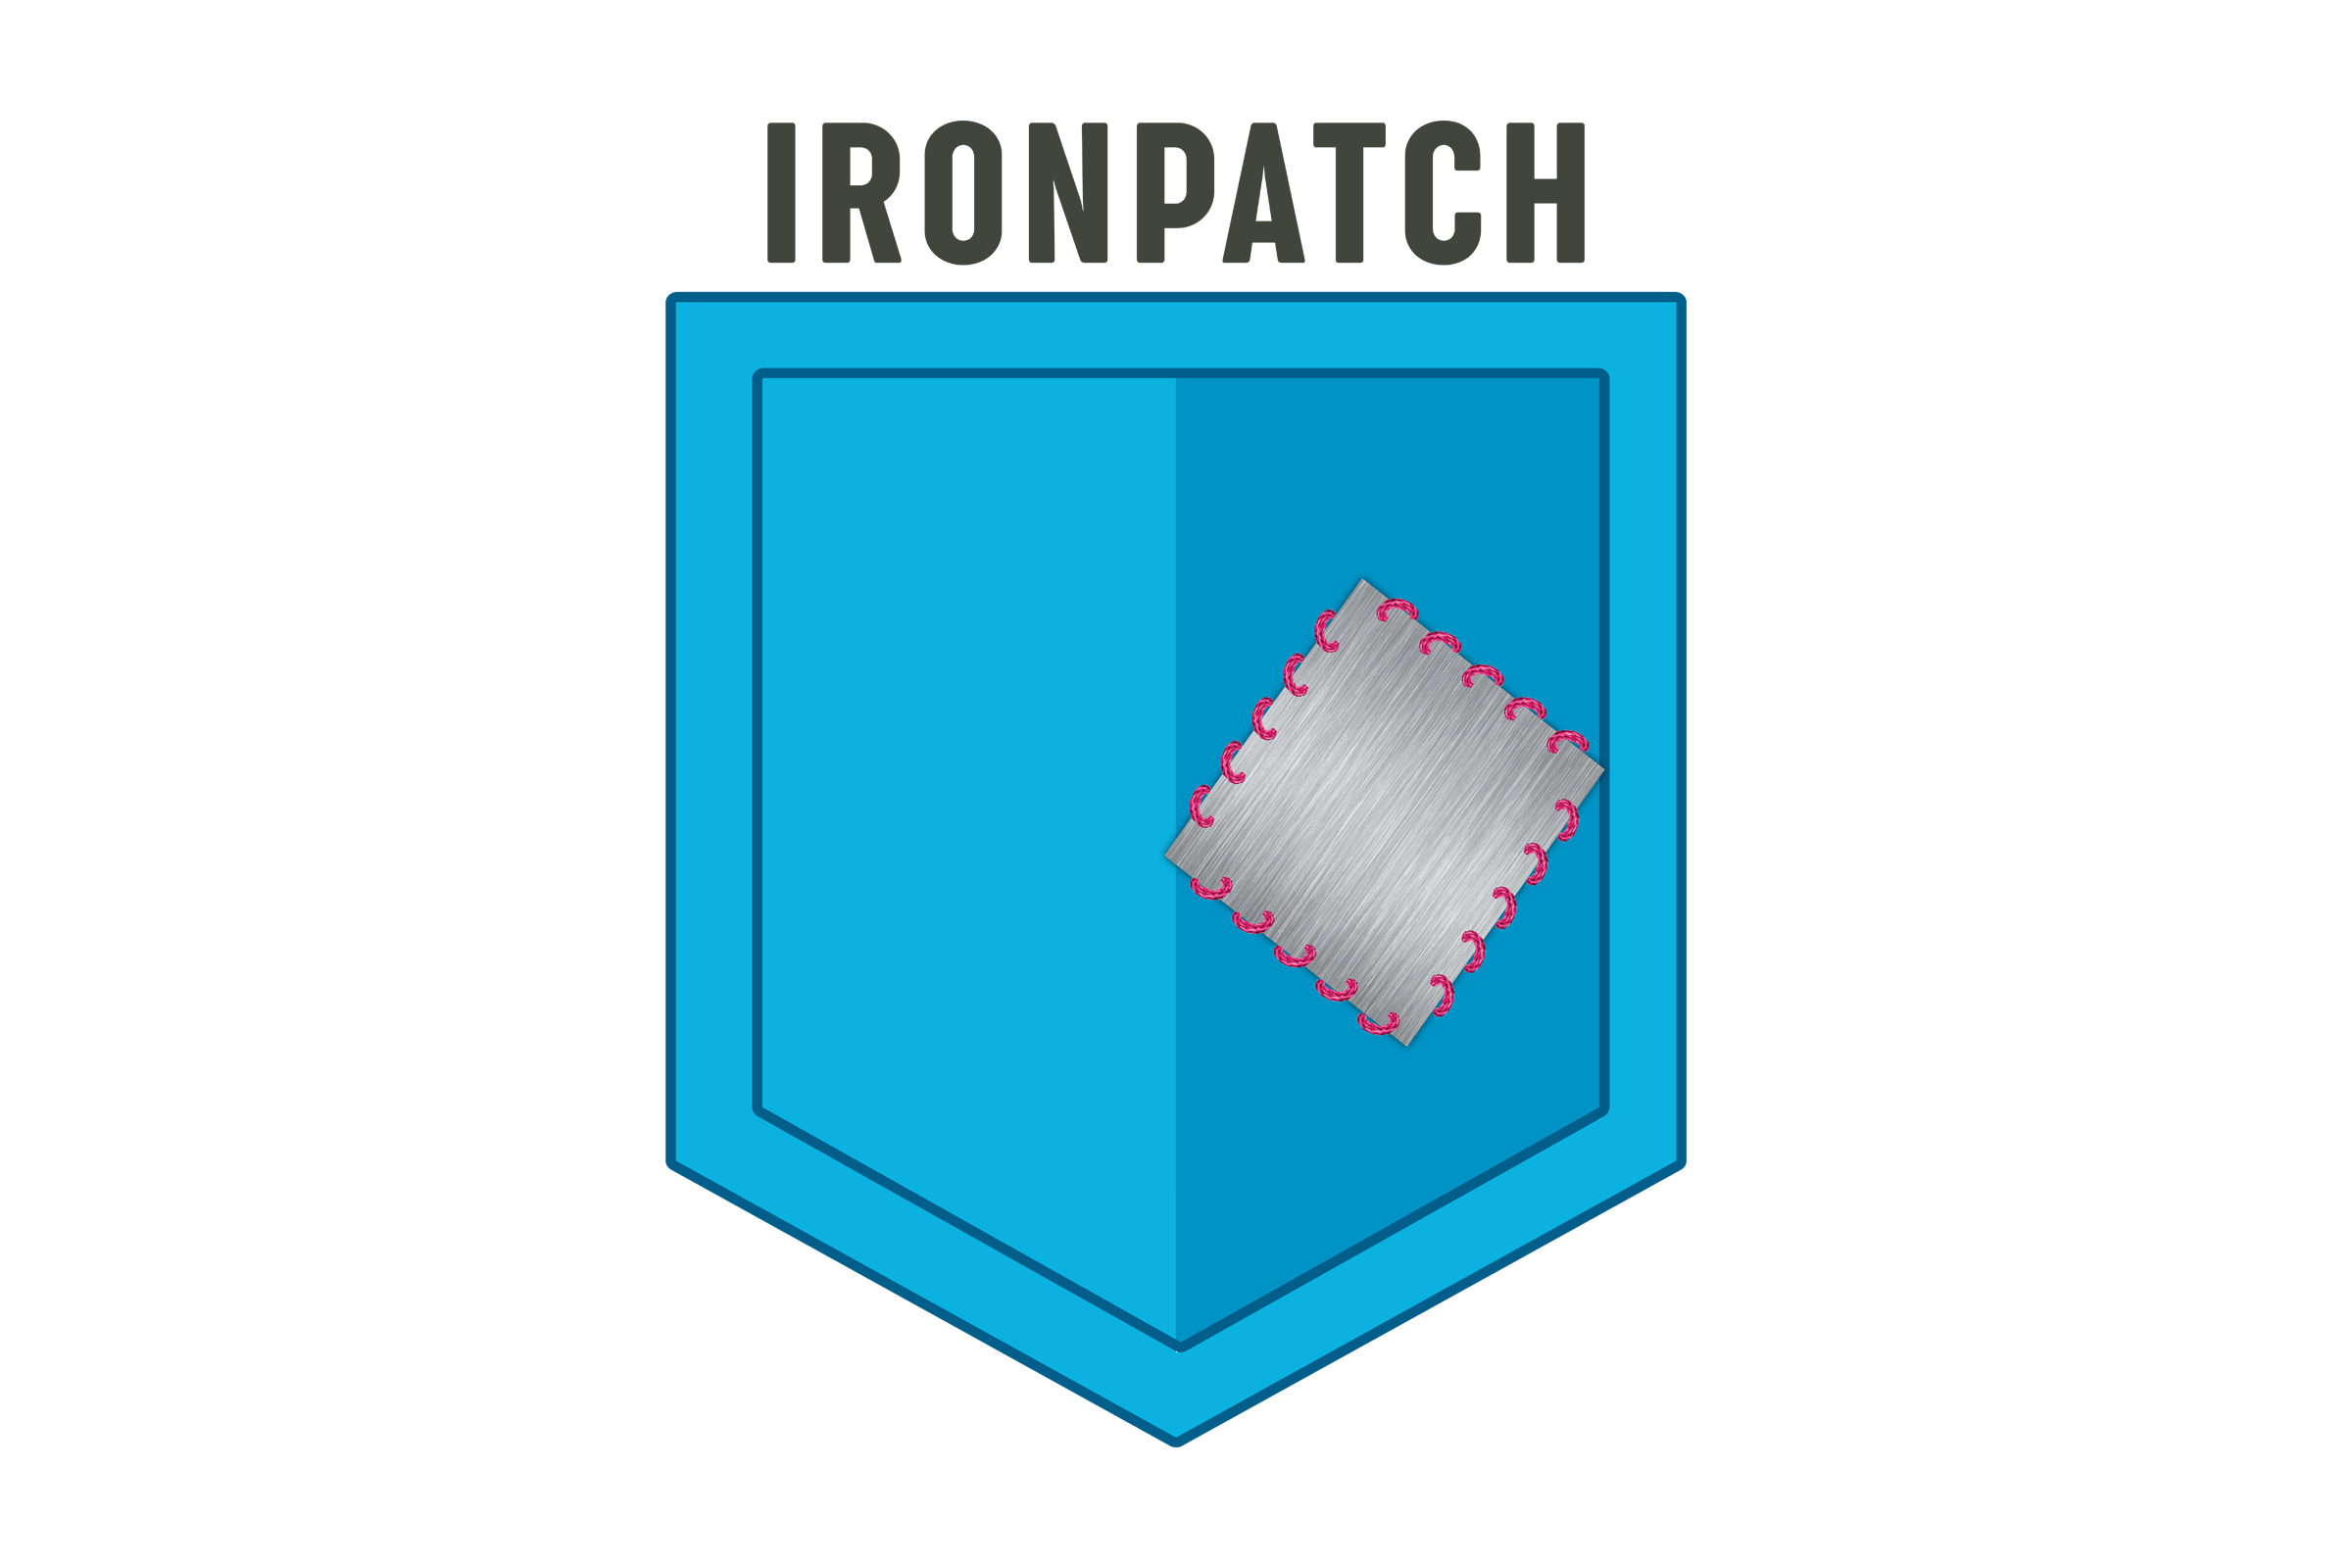 Ironpatch logo